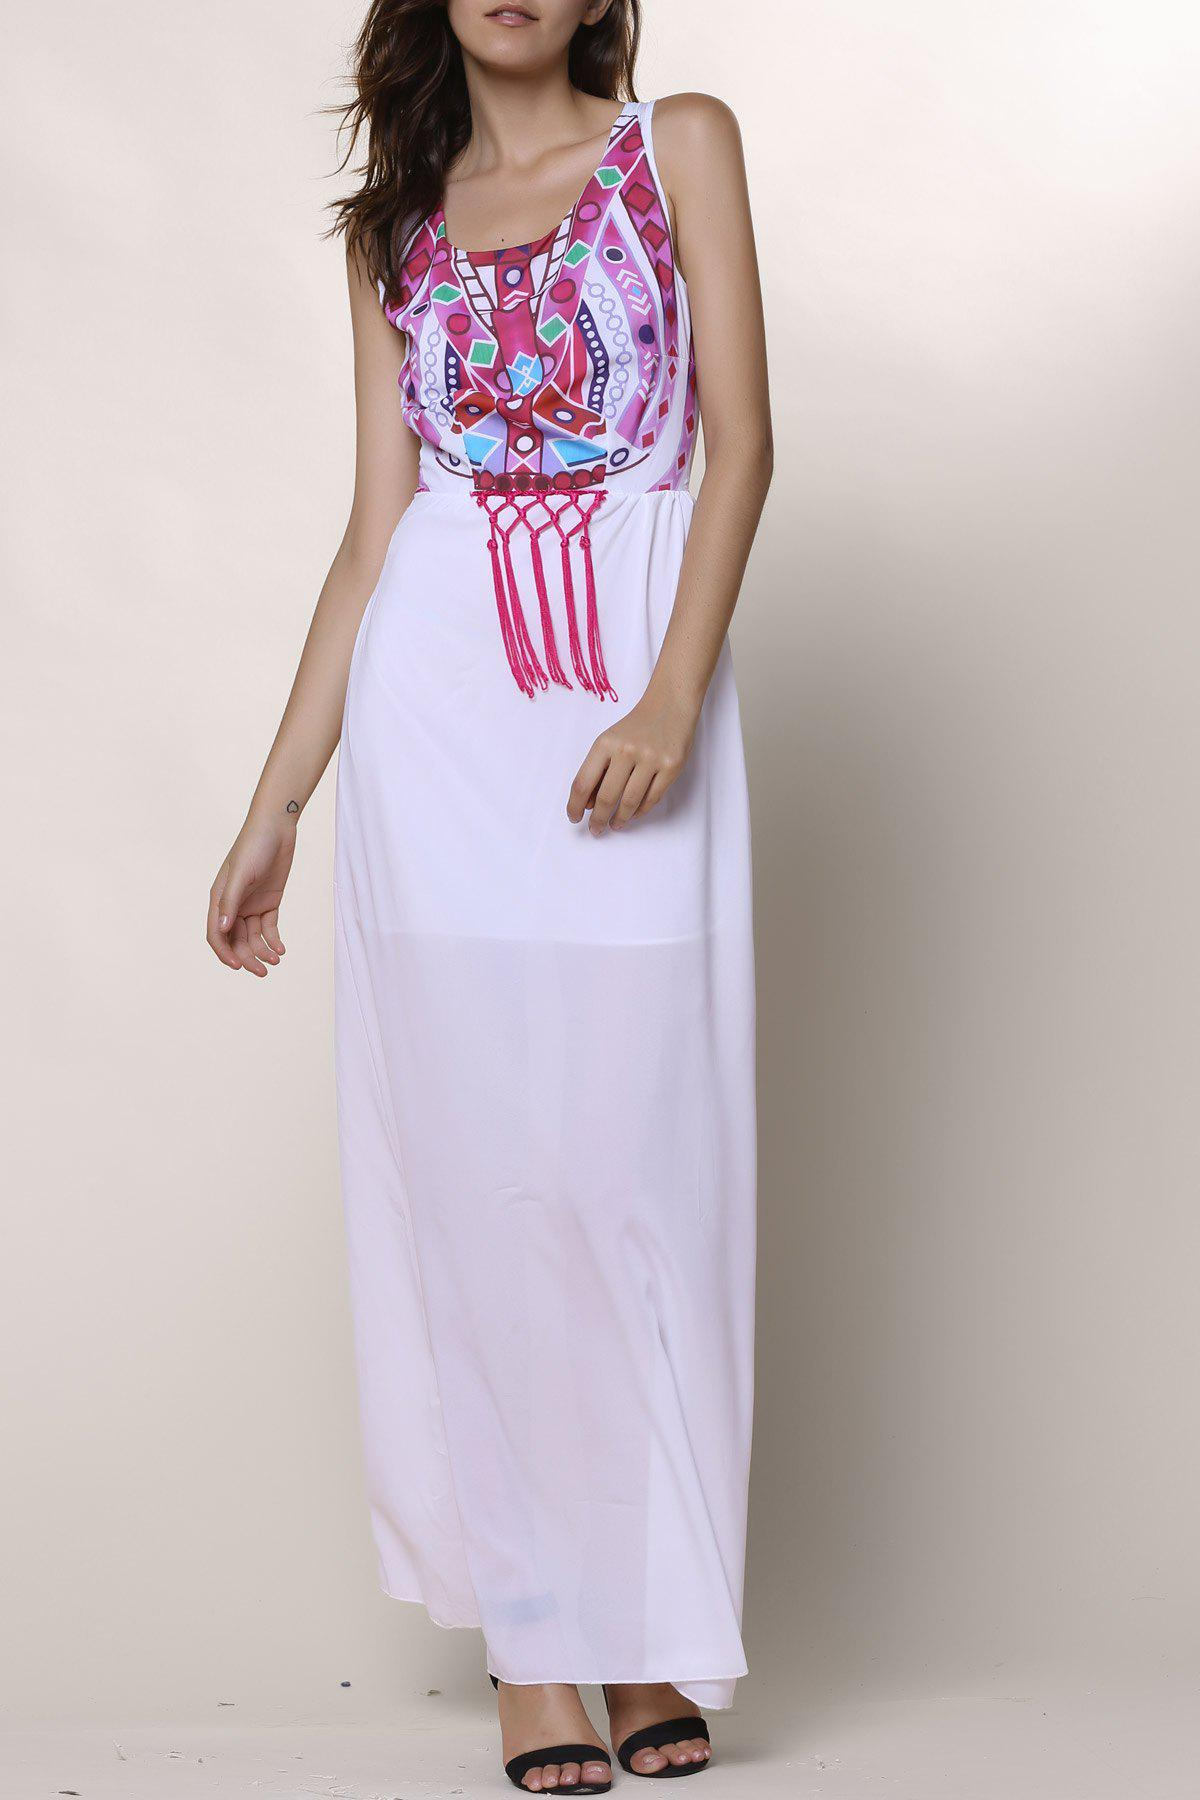 Ethnic Style Sleeveless Round Collar Printed Women's Dress - WHITE S